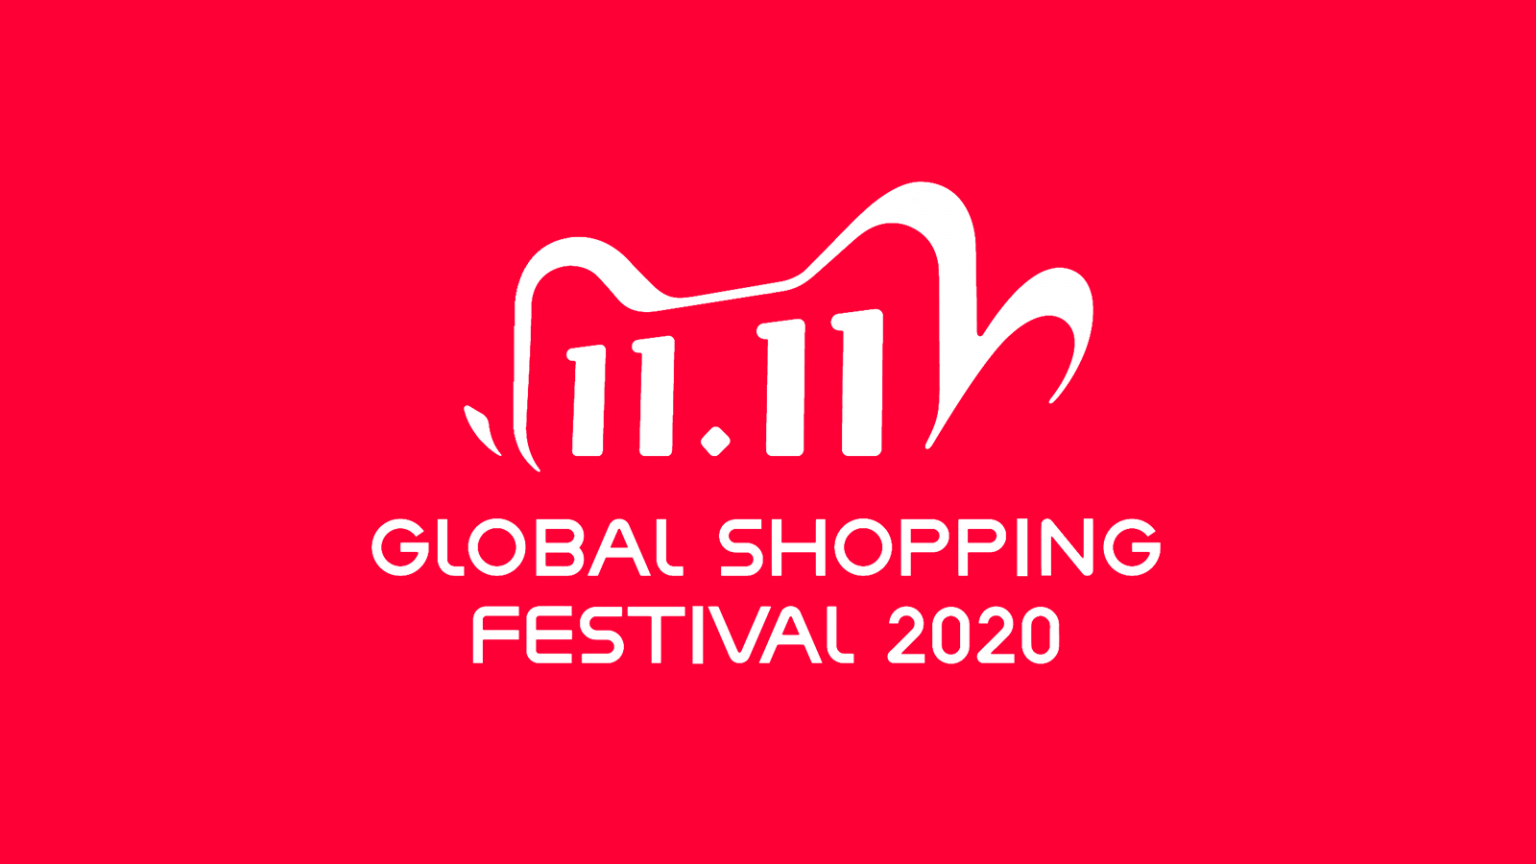 global shopping festival 11.11 China 2020